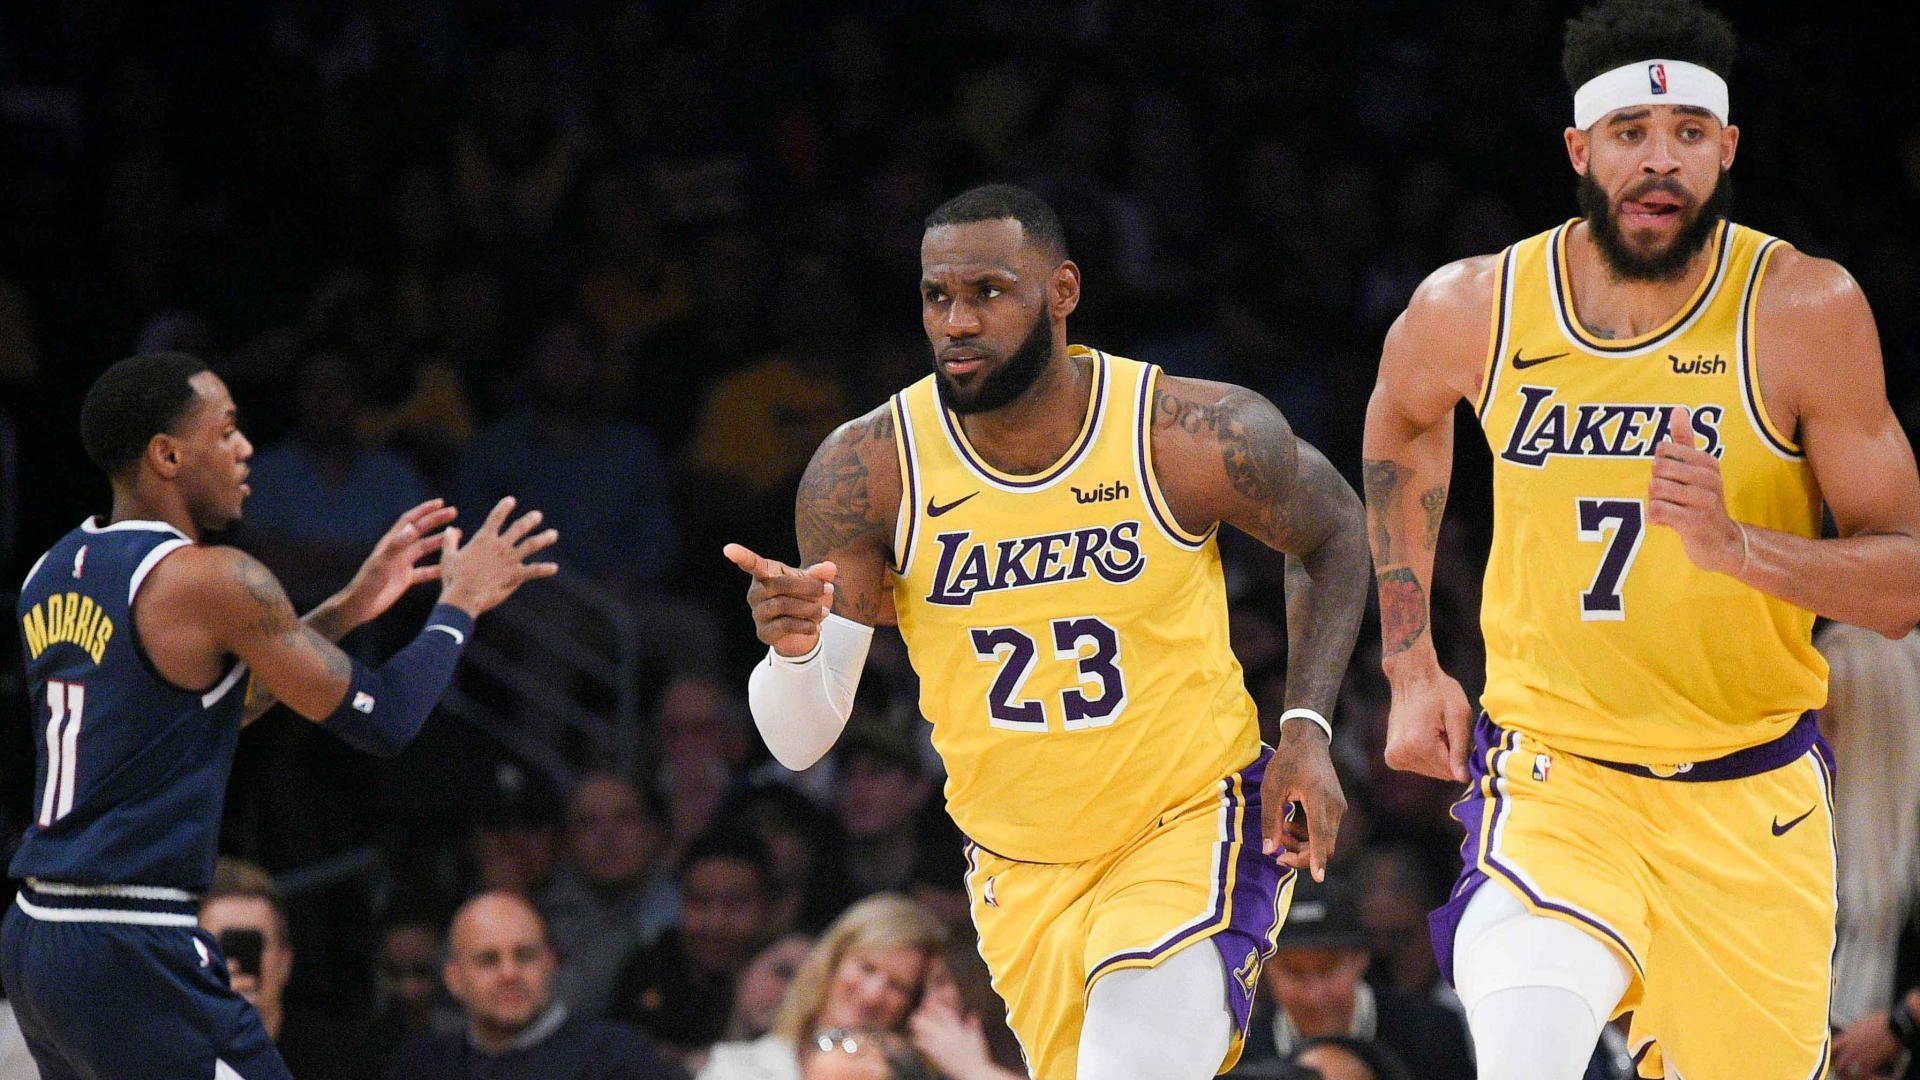 c98866067 GAME RECAP: Lakers 121, Nuggets 114. LeBron James notches his first ...